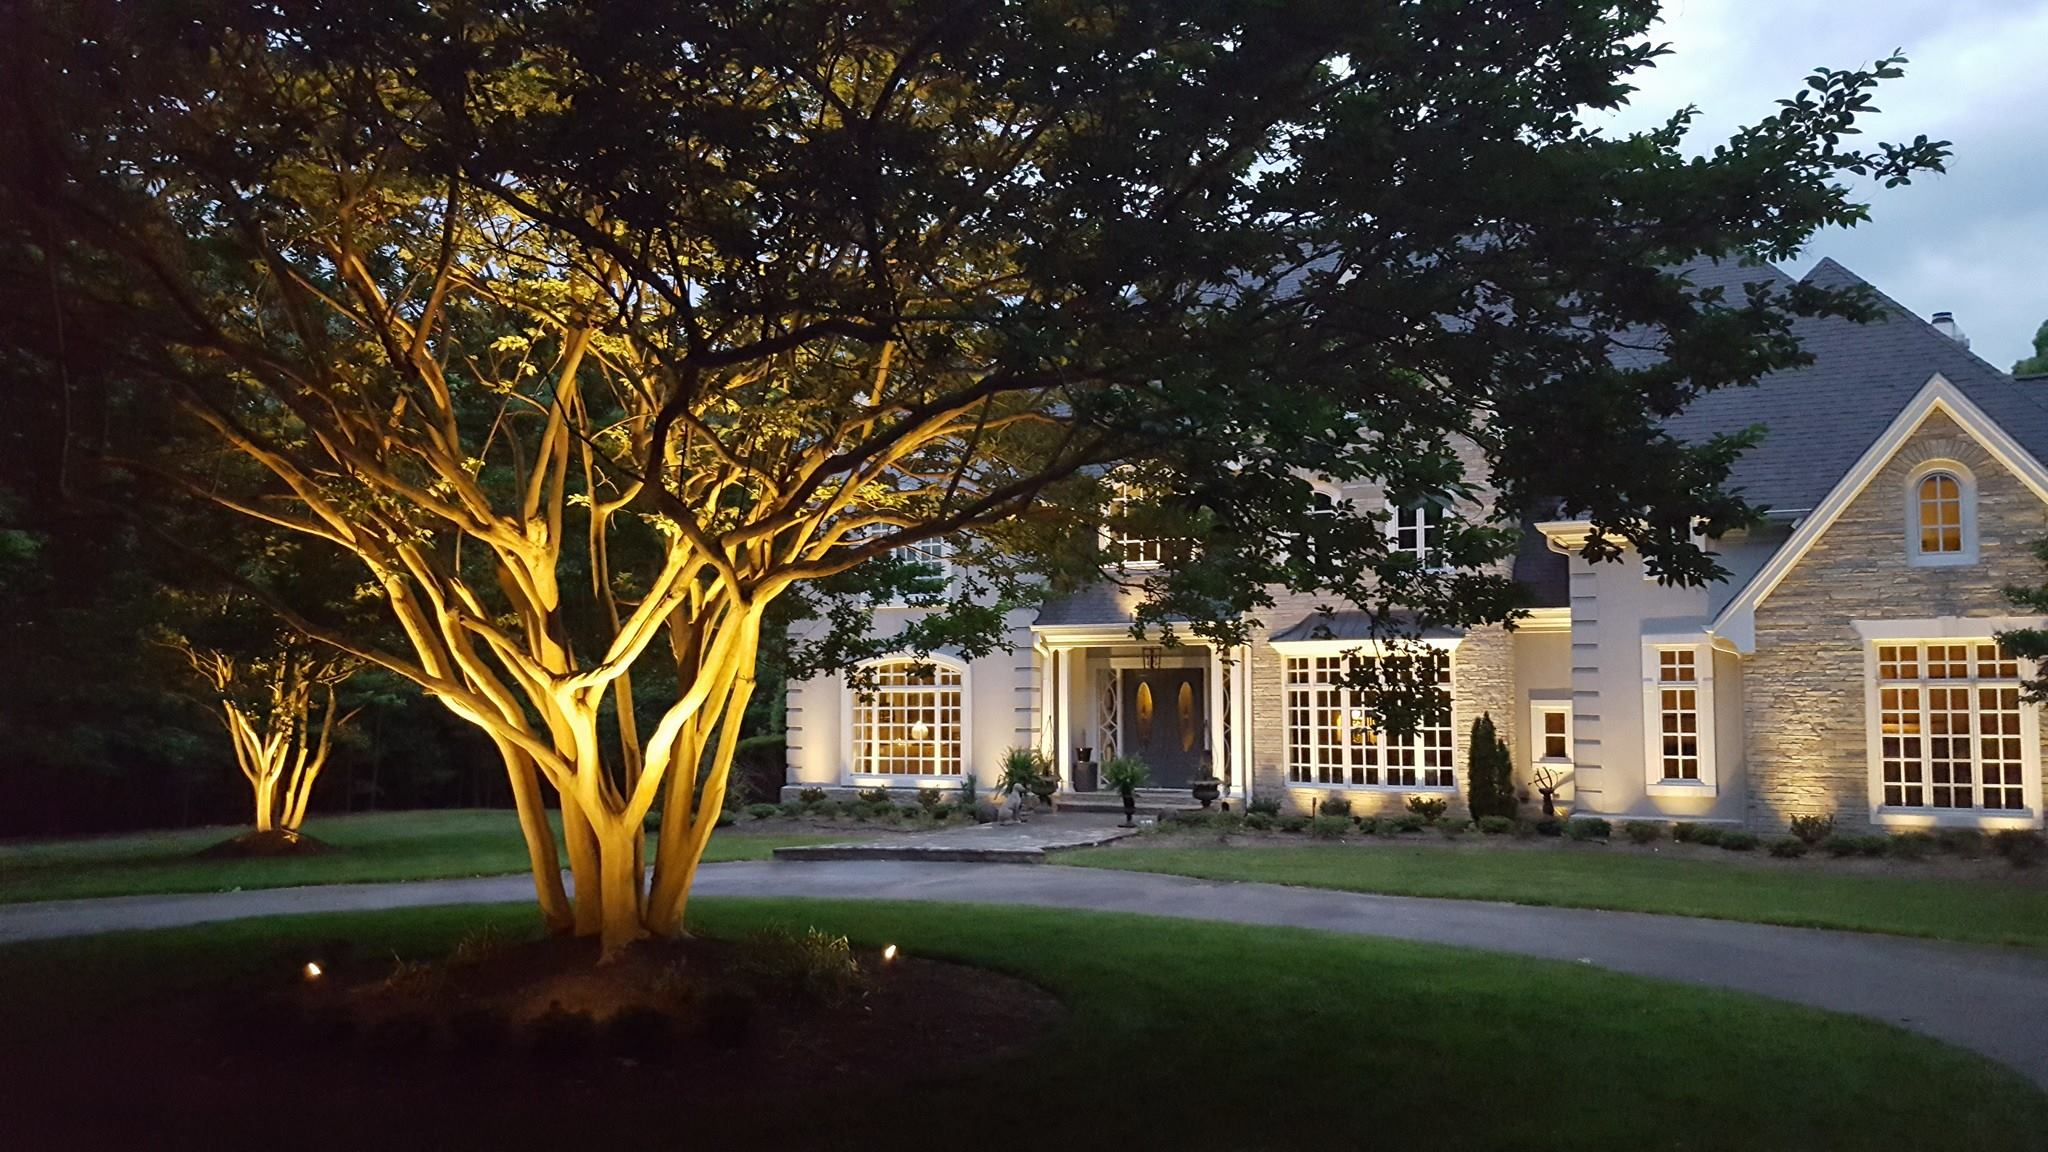 Raleigh NC architectural lighting